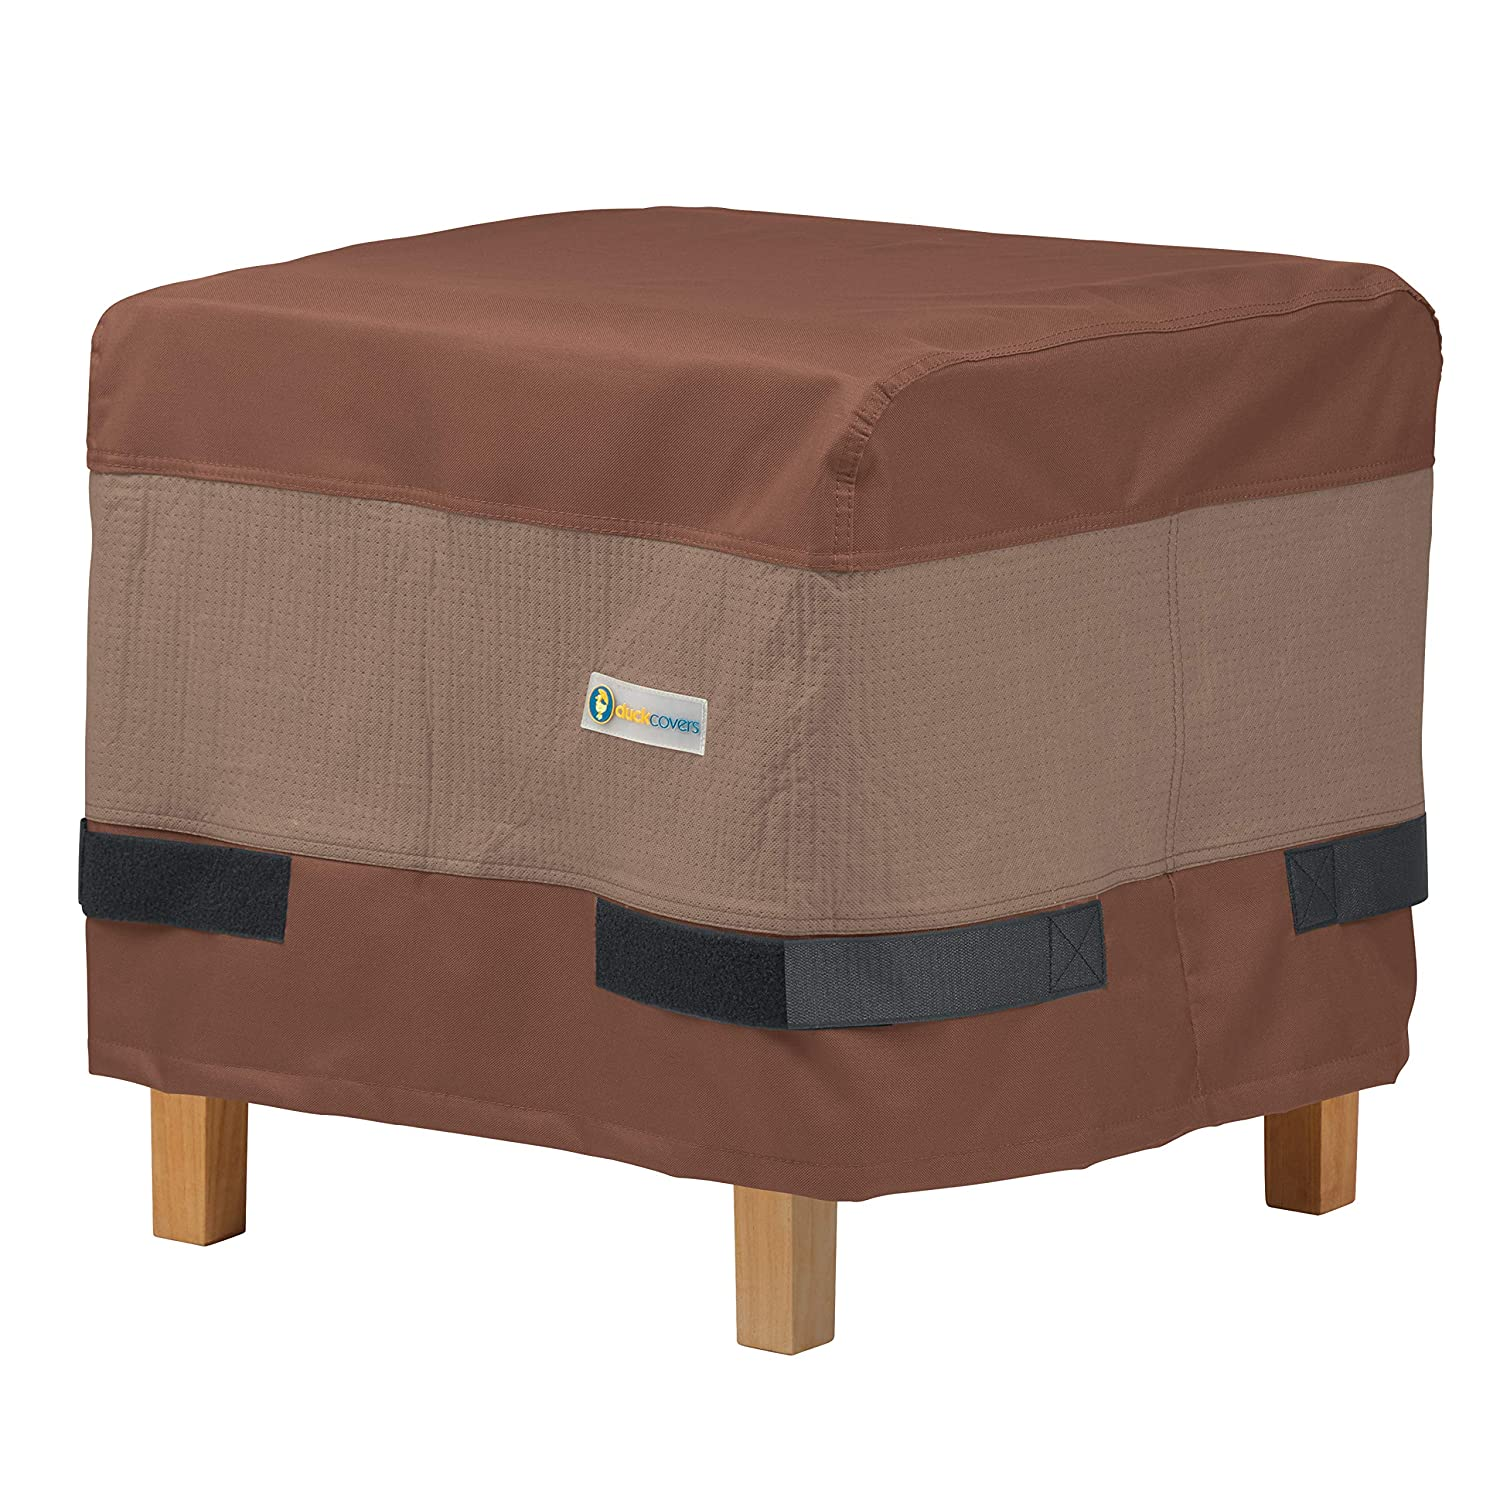 "Duck Covers Ultimate Square Ottoman/Side Table Cover 20"" x 20"""